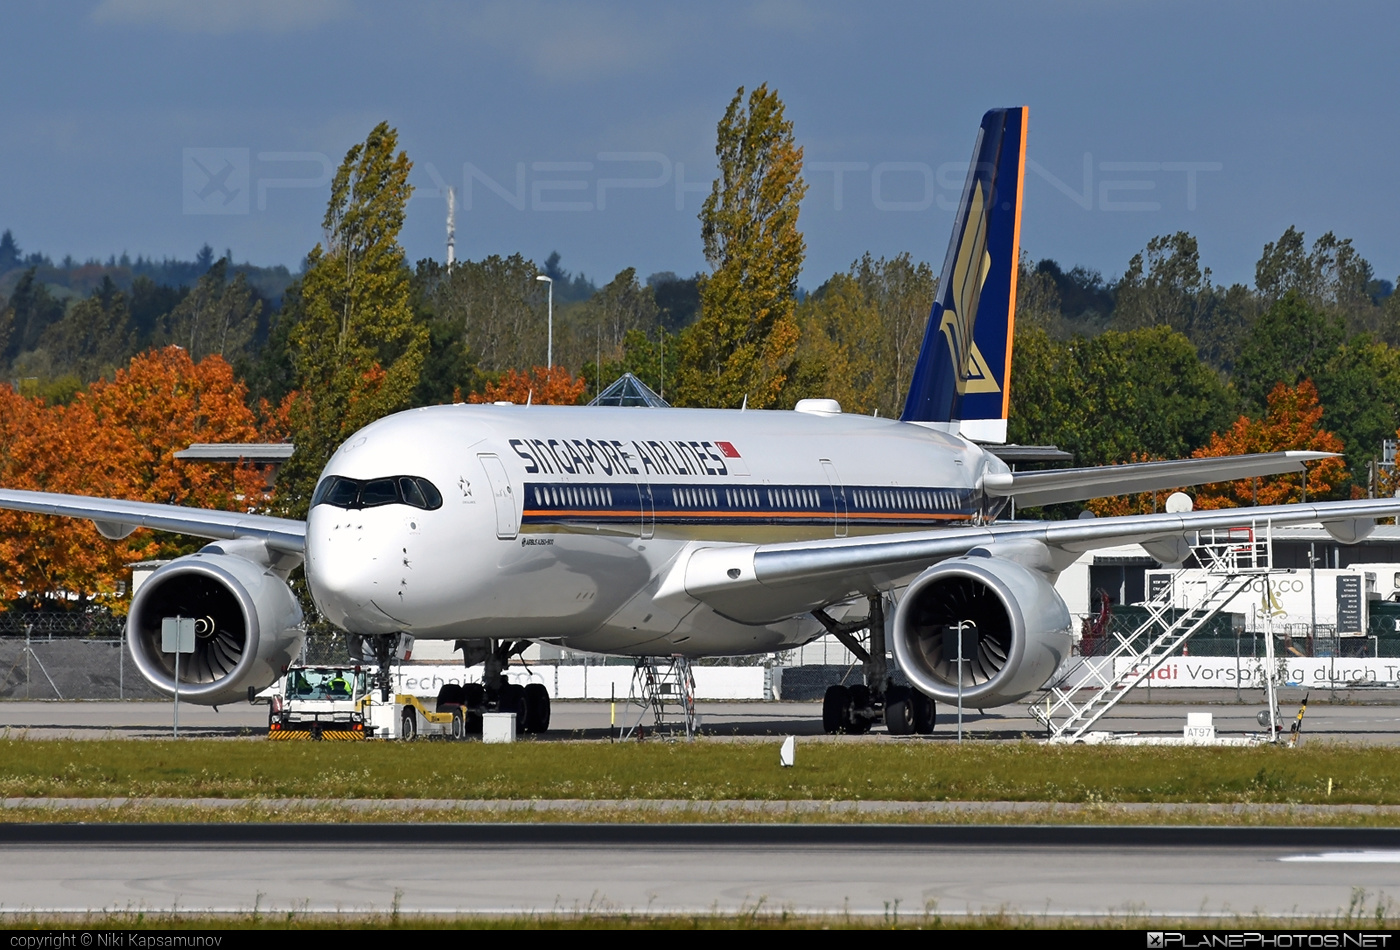 Airbus A350-941 - 9V-SMK operated by Singapore Airlines #a350 #a350family #airbus #airbus350 #singaporeairlines #xwb